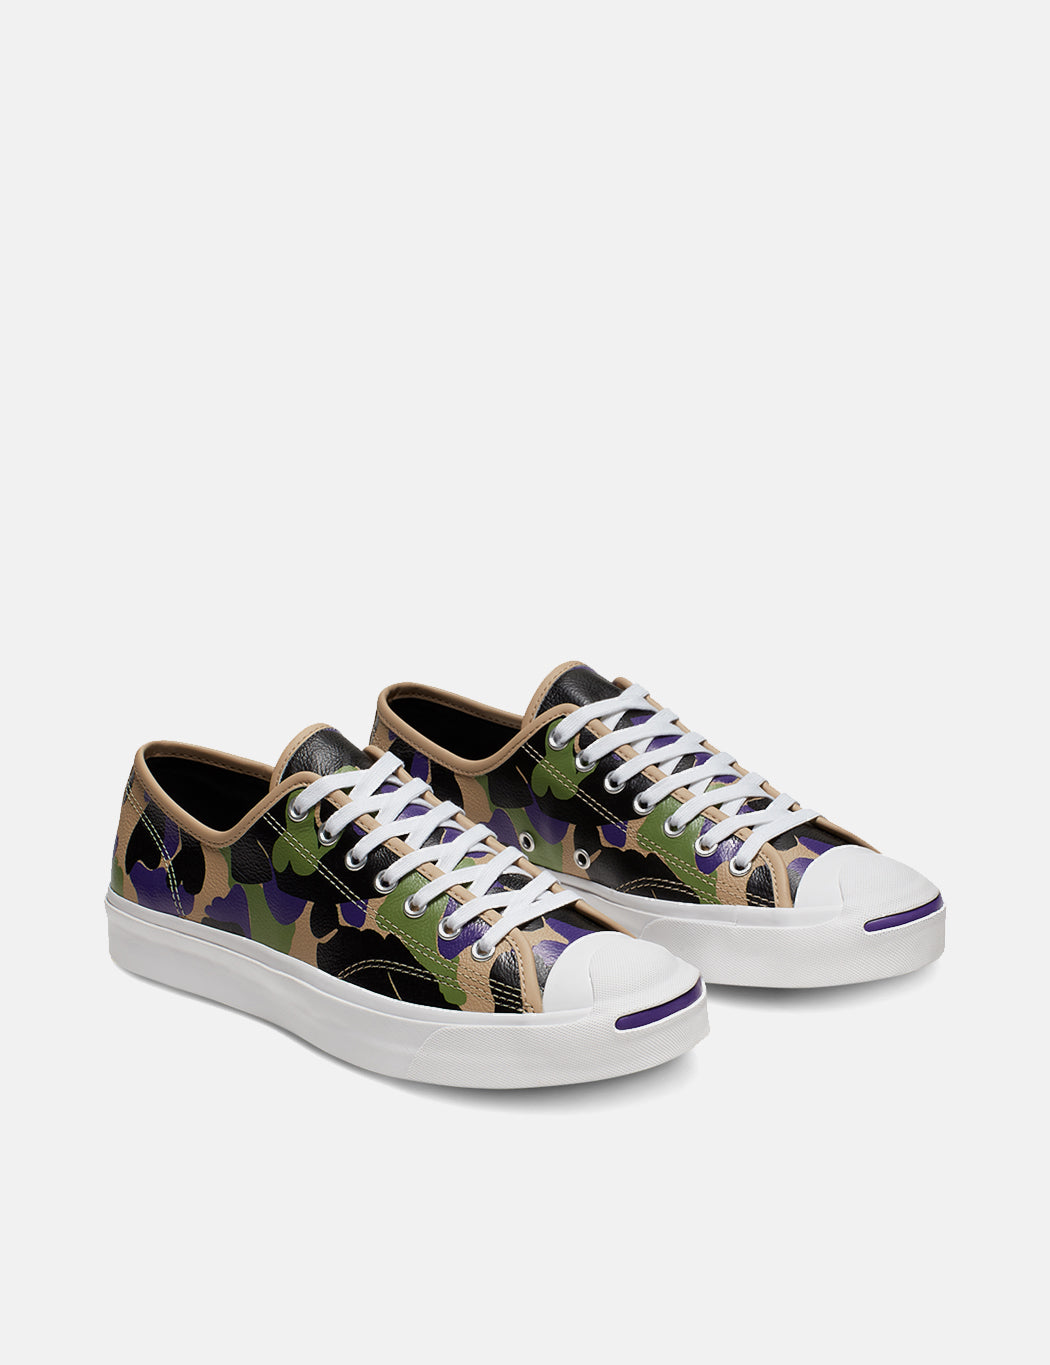 Converse 70's Archive Print Jack Purcell Low (165963C) BlackCandied GingerPurple